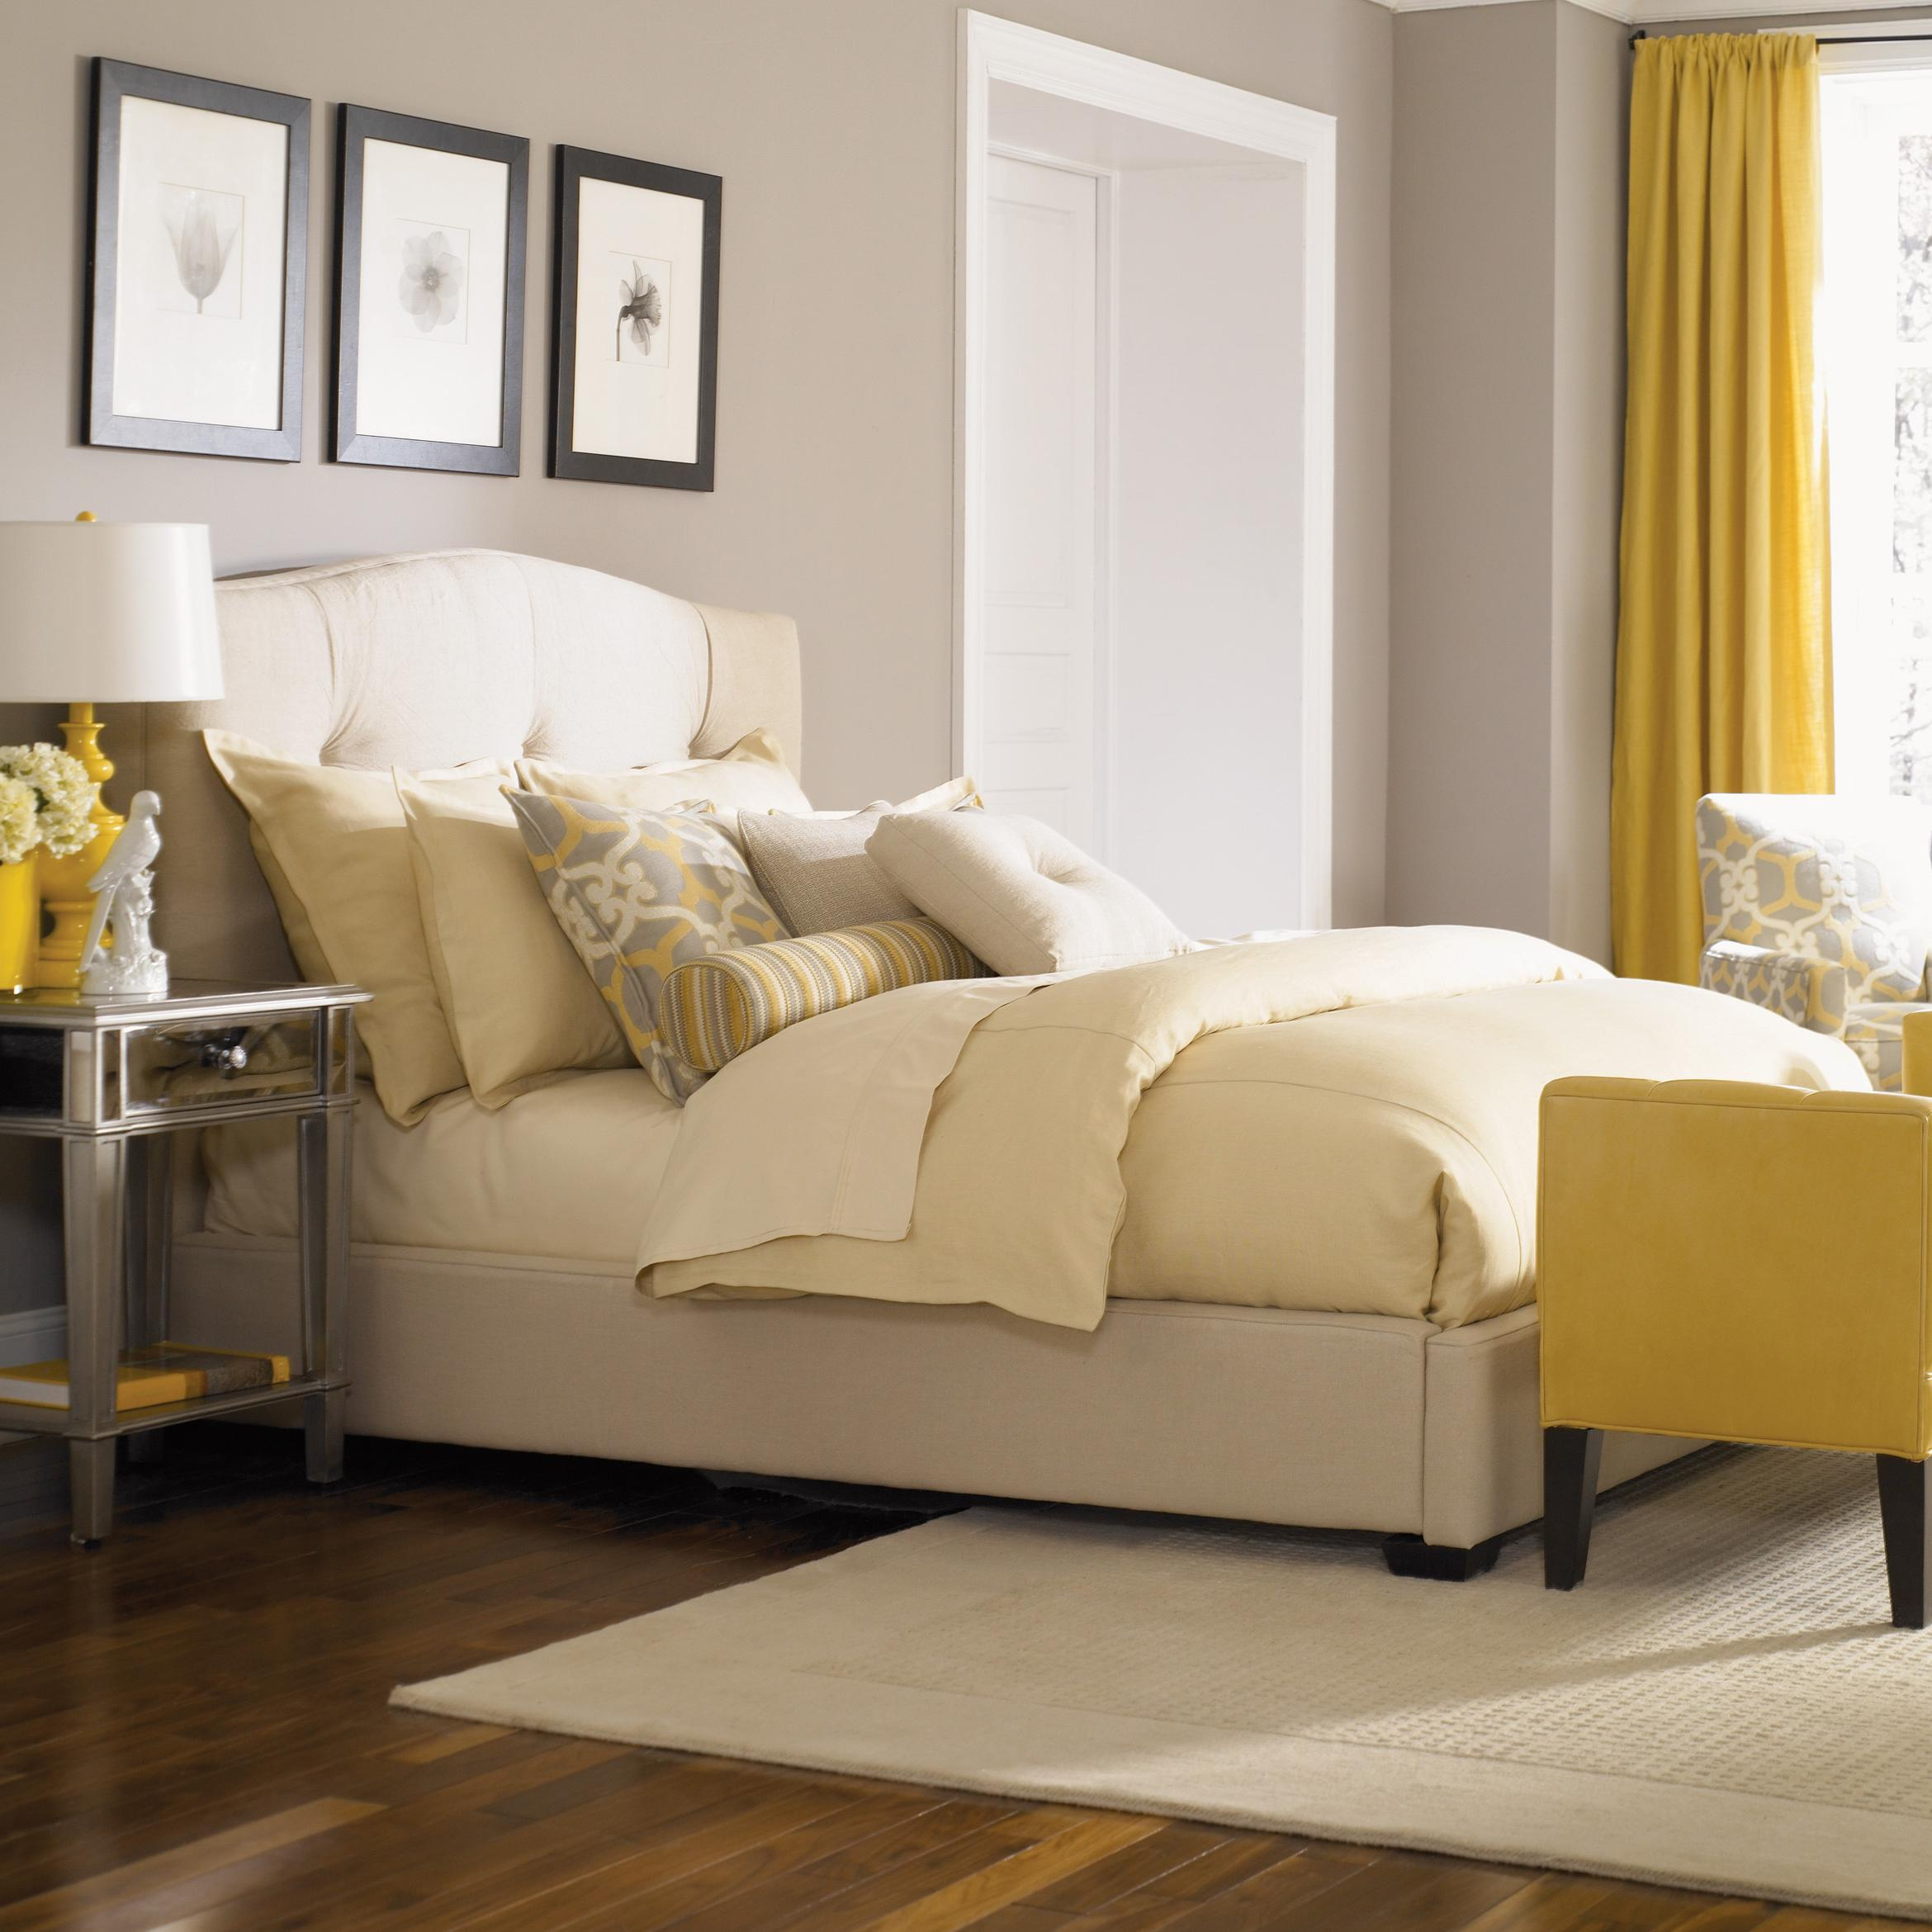 Bergman Queen Upholstered Bed  at Williams & Kay